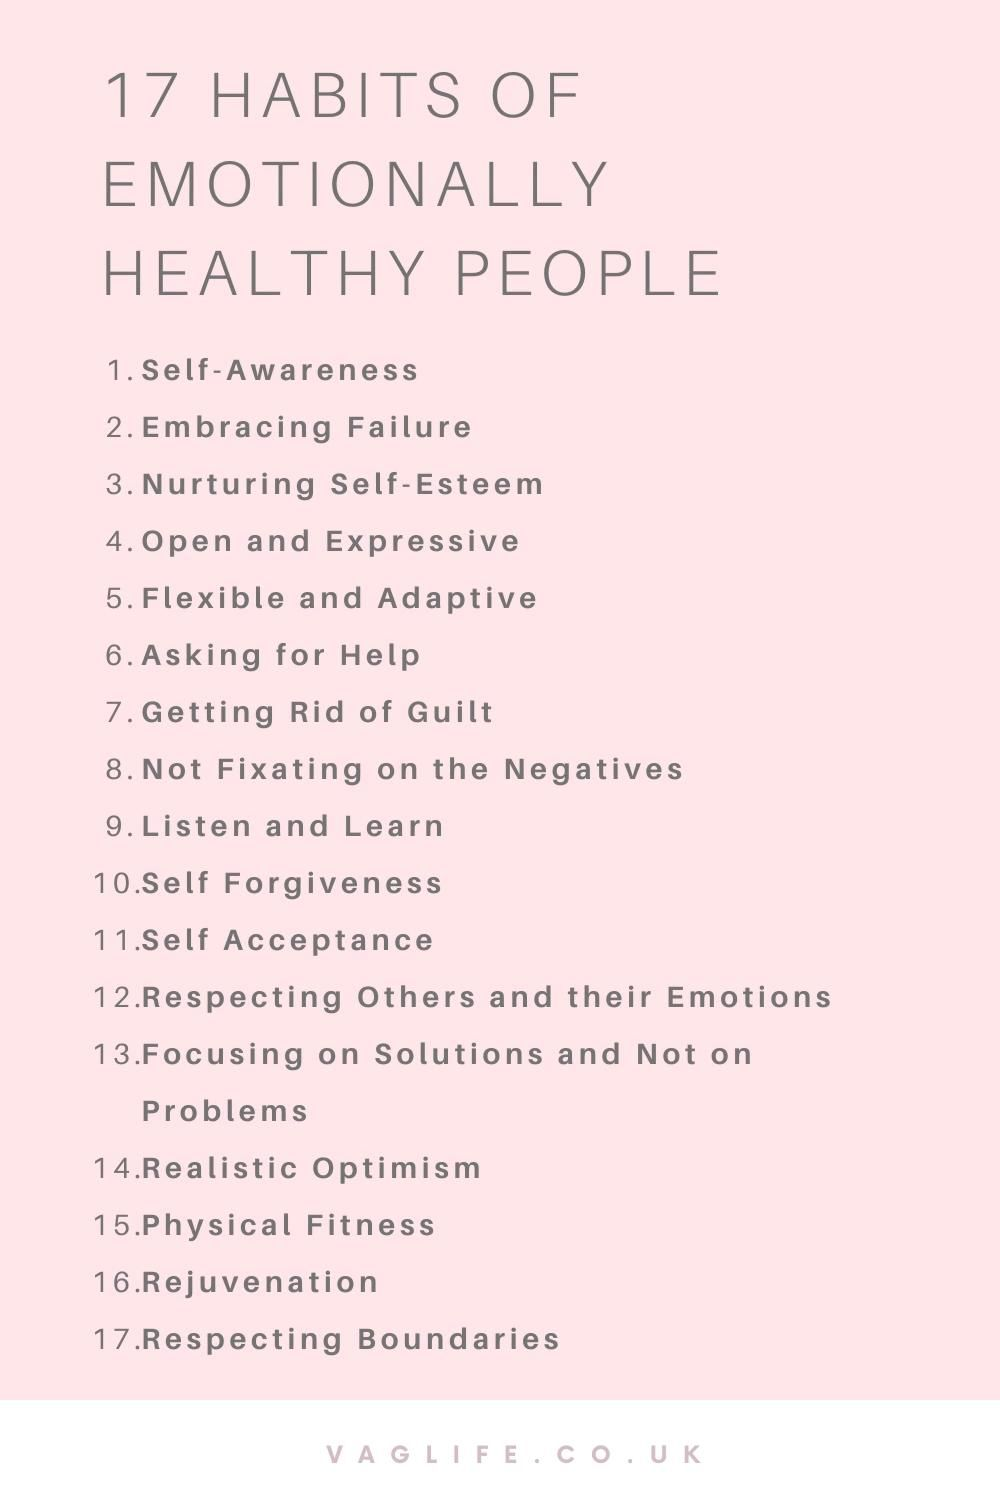 17 Habits Of Emotionally Healthy People